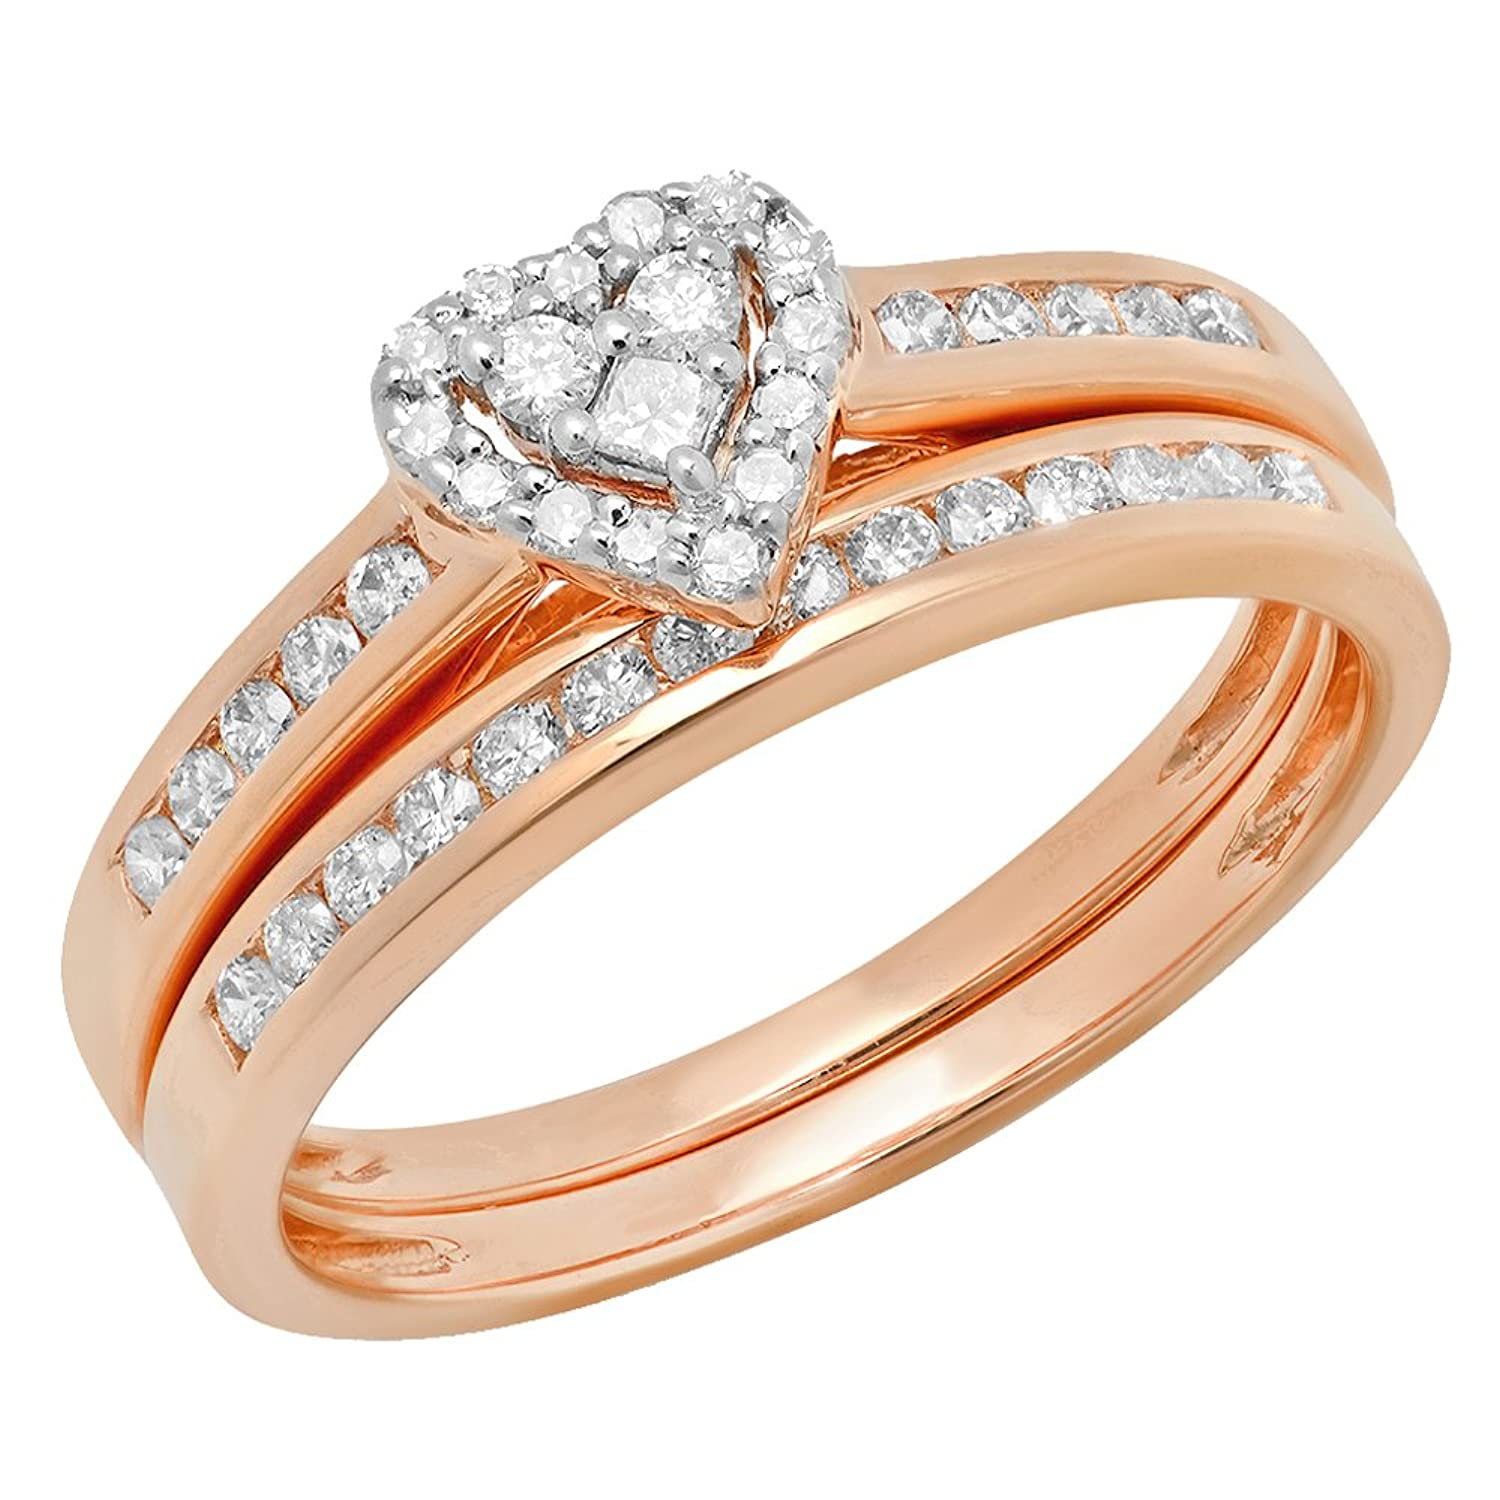 0.50 Carat (ctw) 10K Gold Round Diamond Ladies Heart Shaped Bridal Engagement Ring Set 1/2 CT